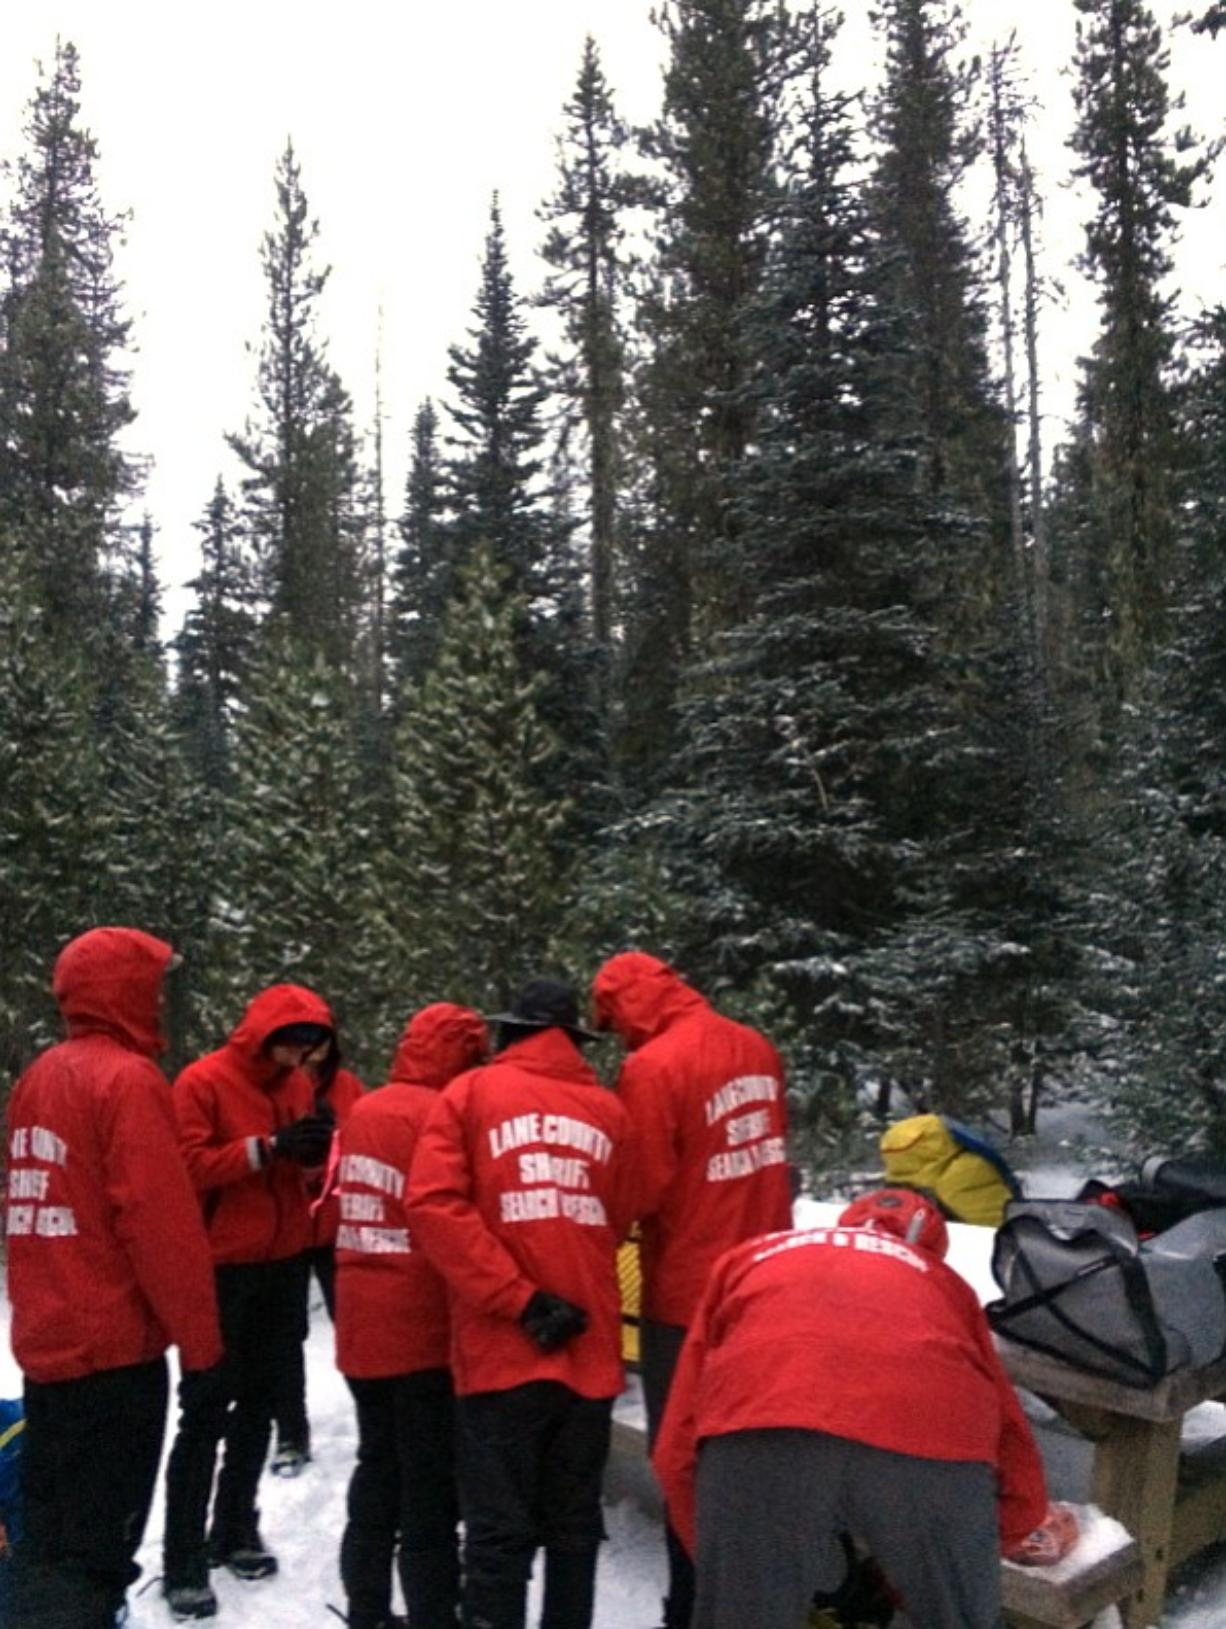 Lane County Sheriff Search and rescue members gather on central Oregon's Middle Sister mountain Friday, near Sisters, Ore., as the search for a missing climber continues.